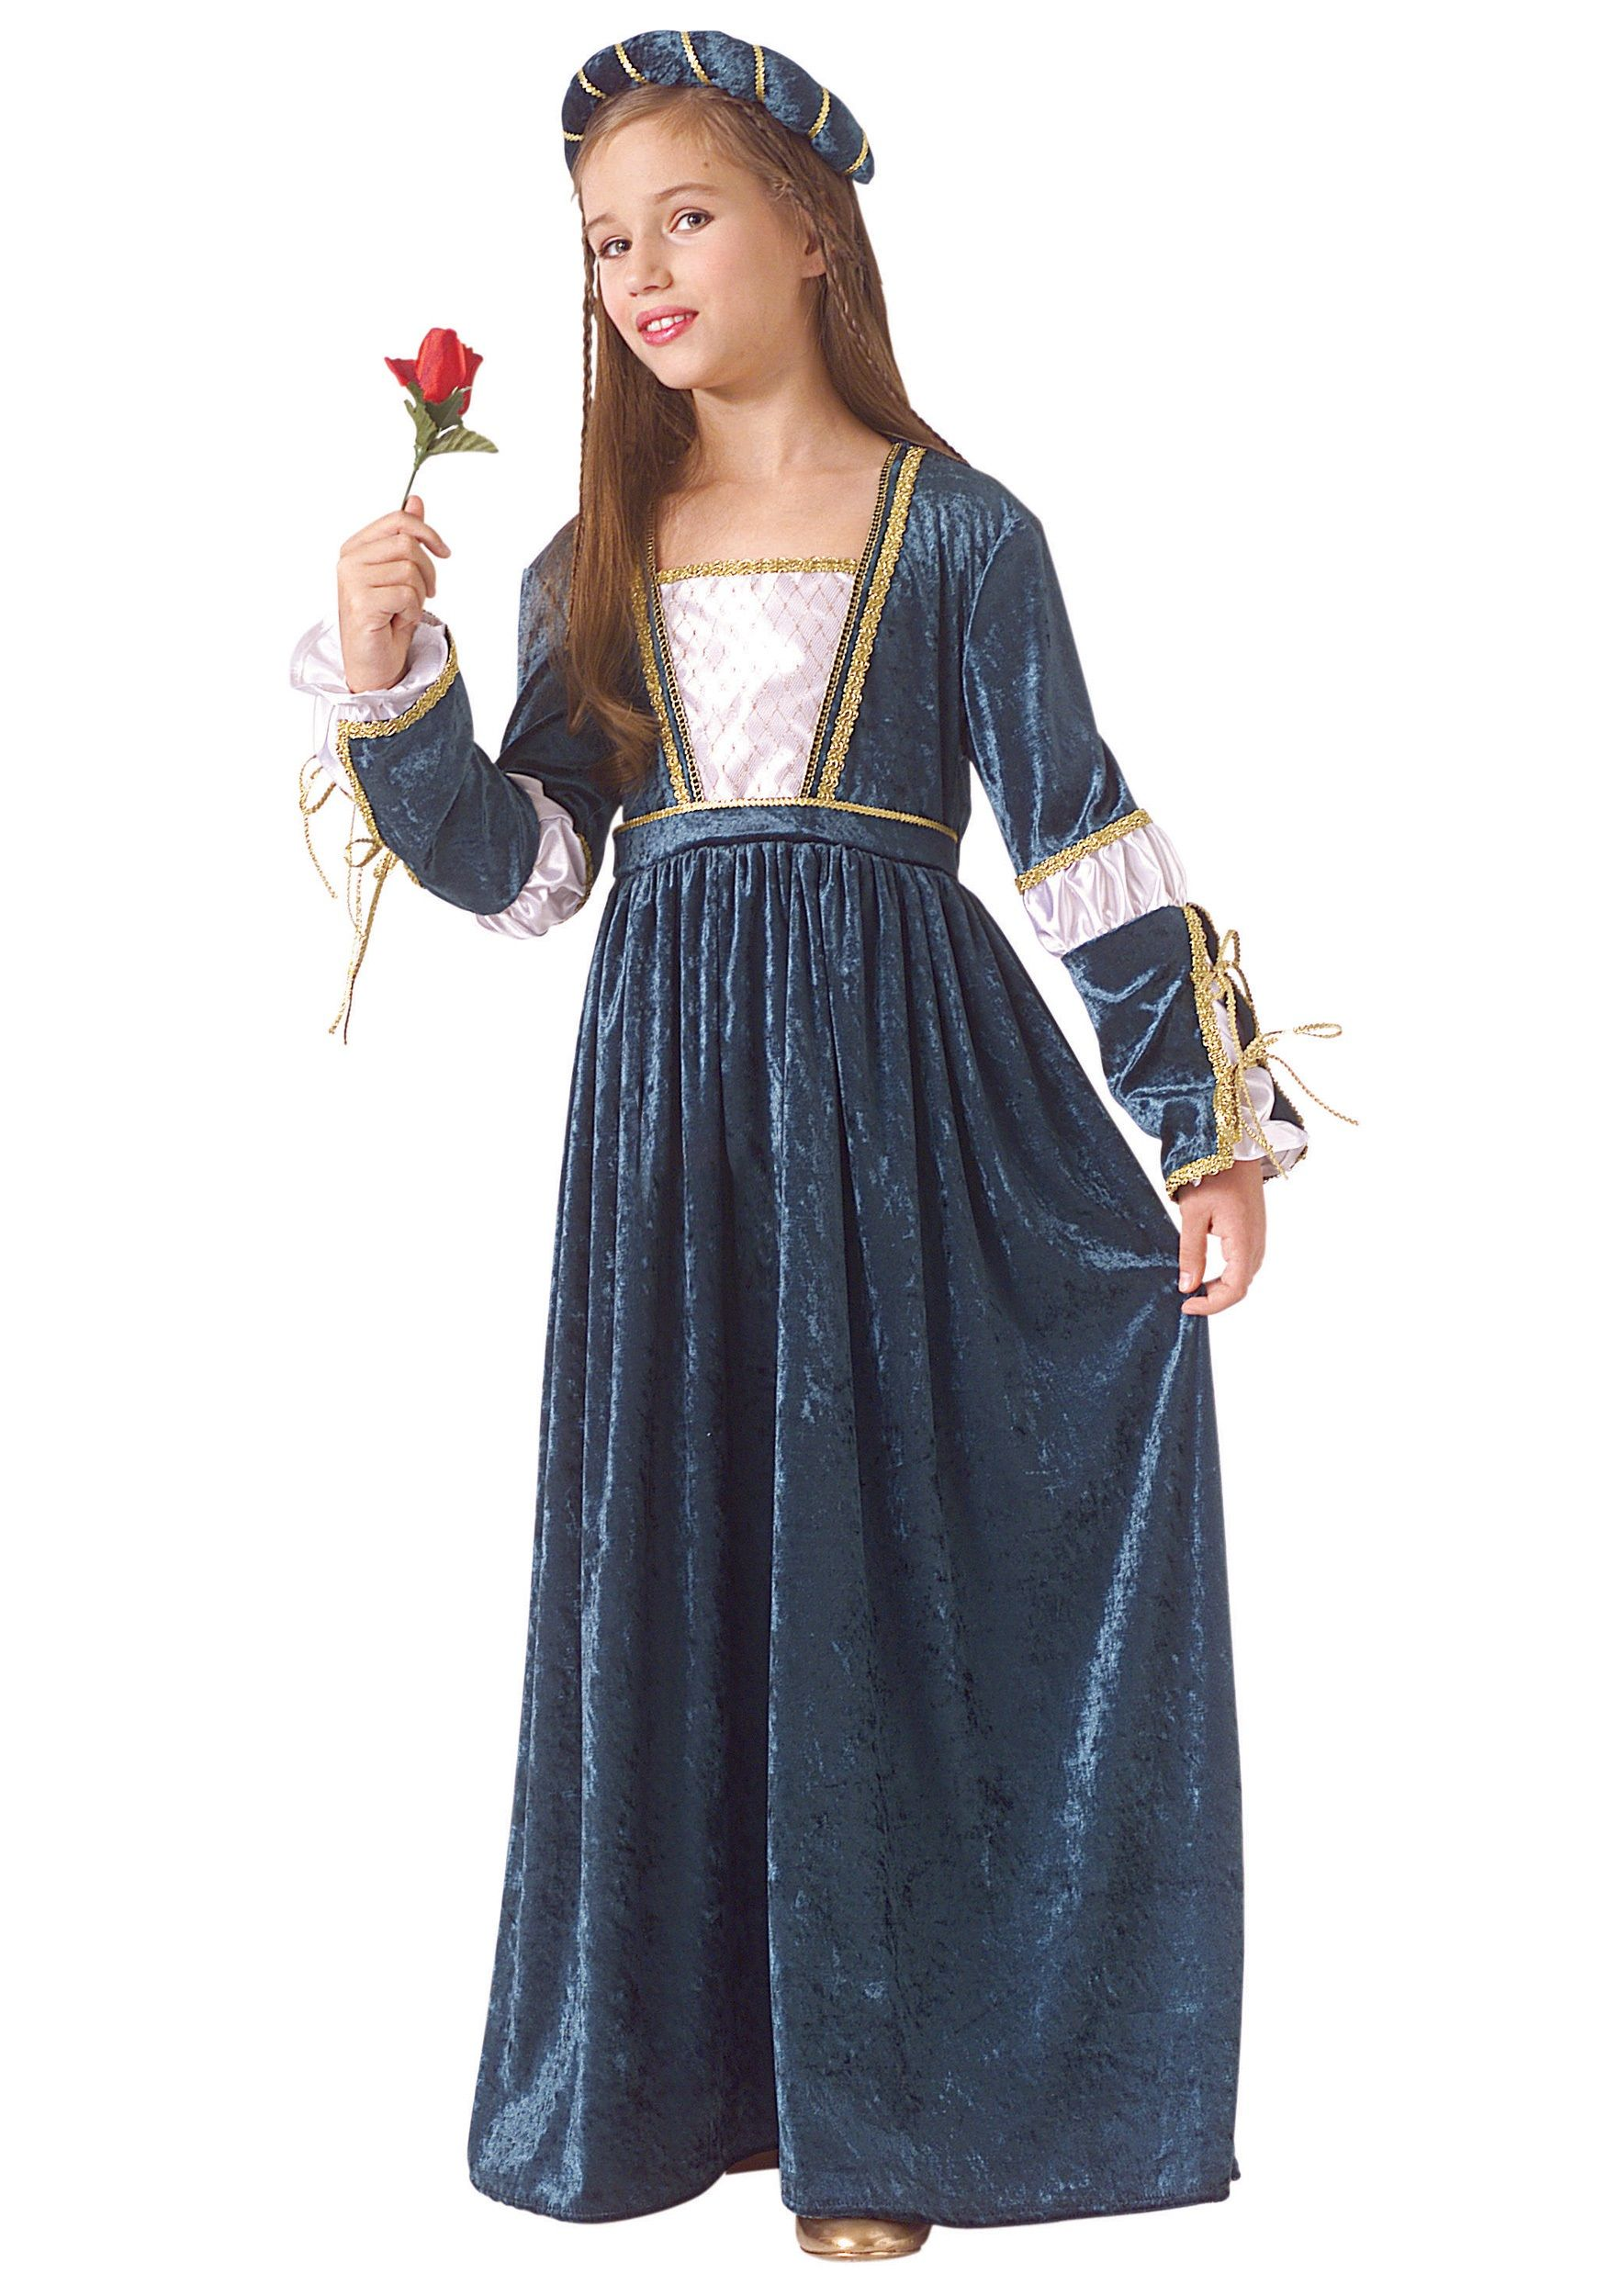 8fe258ff931 Child Juliet Costume. Hugh the Millers Child  Style Costume Renaissance